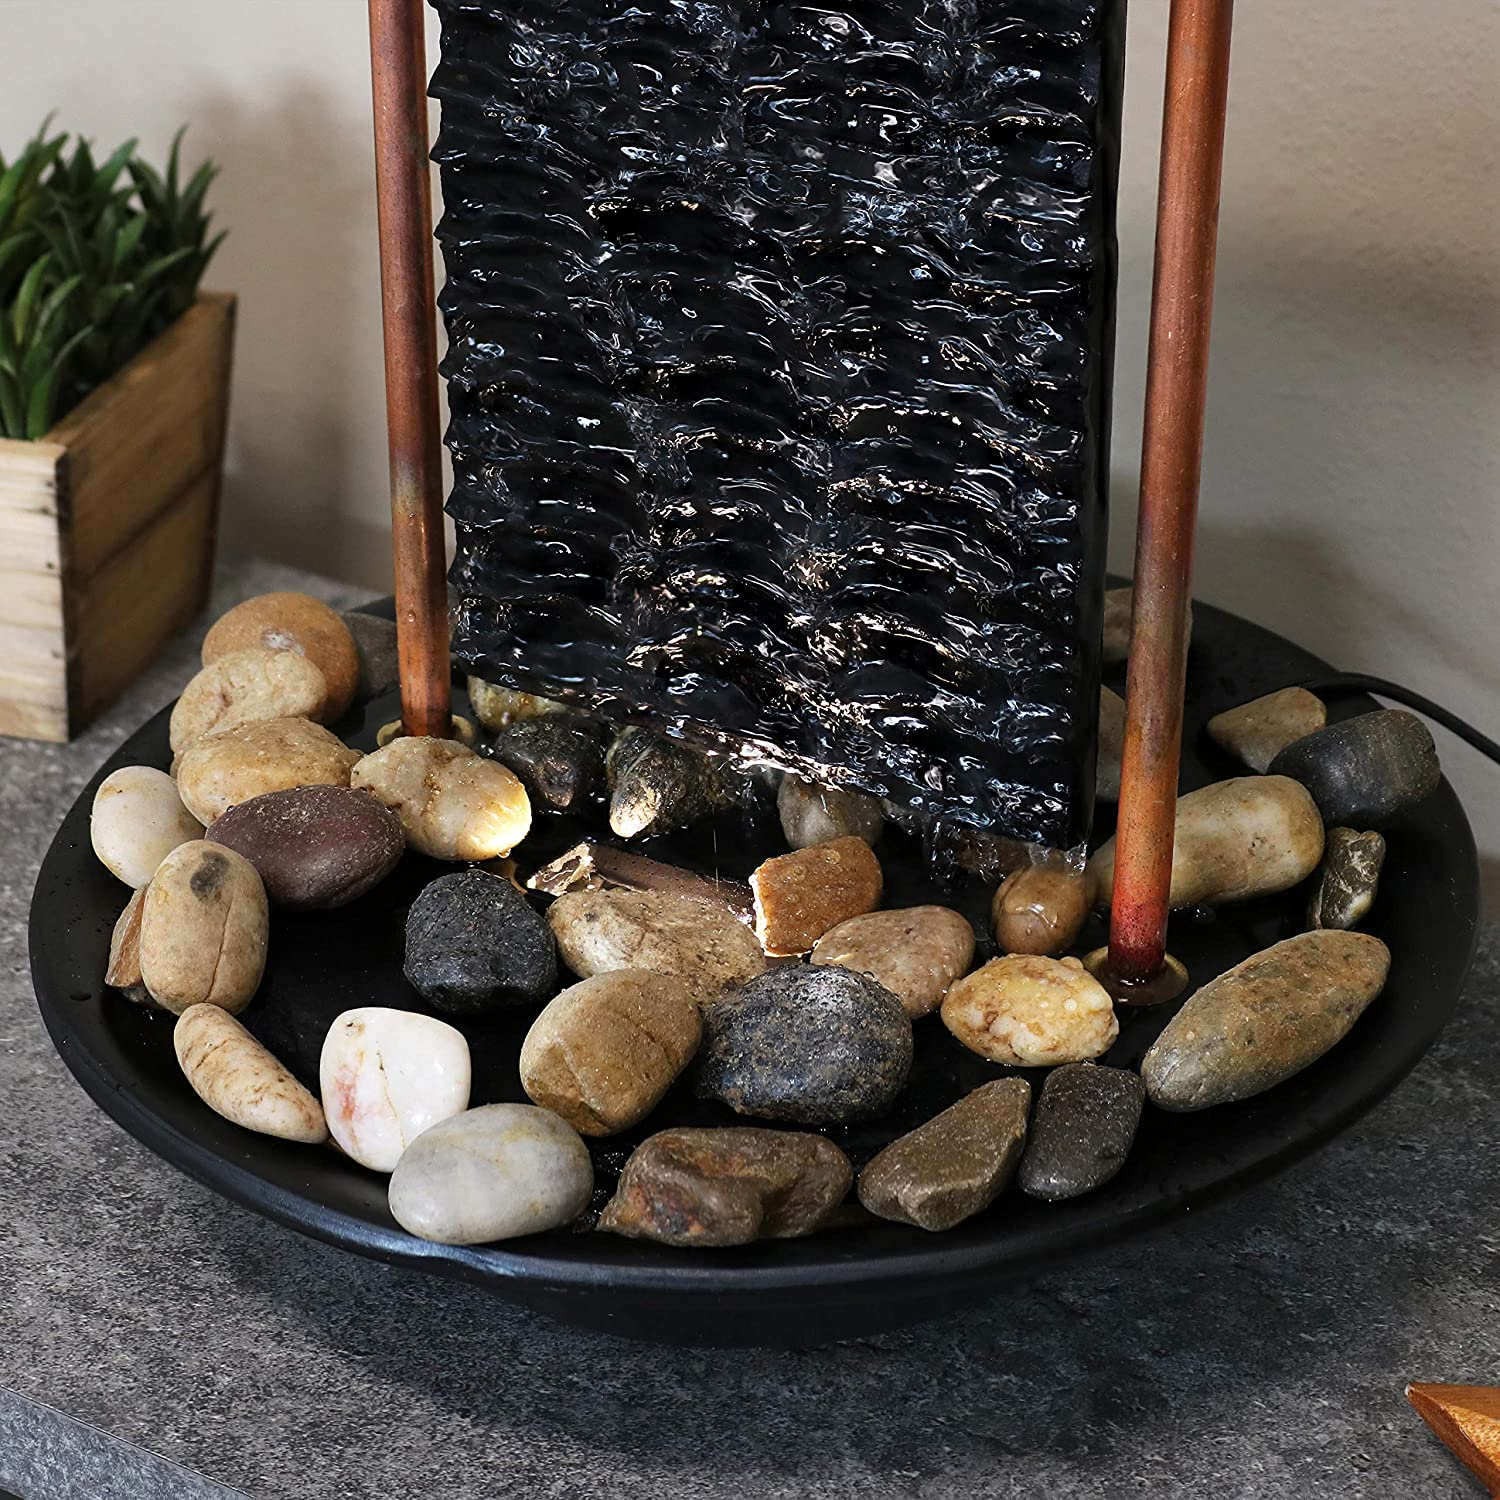 Sunnydaze Billowing Slate Tabletop Water Fountain - Mini Indoor Water Fountain with LED Light - Relaxing Home Decor Accent Piece for Living Room, Office or Bedroom - 16-Inch: Kitchen & Dining